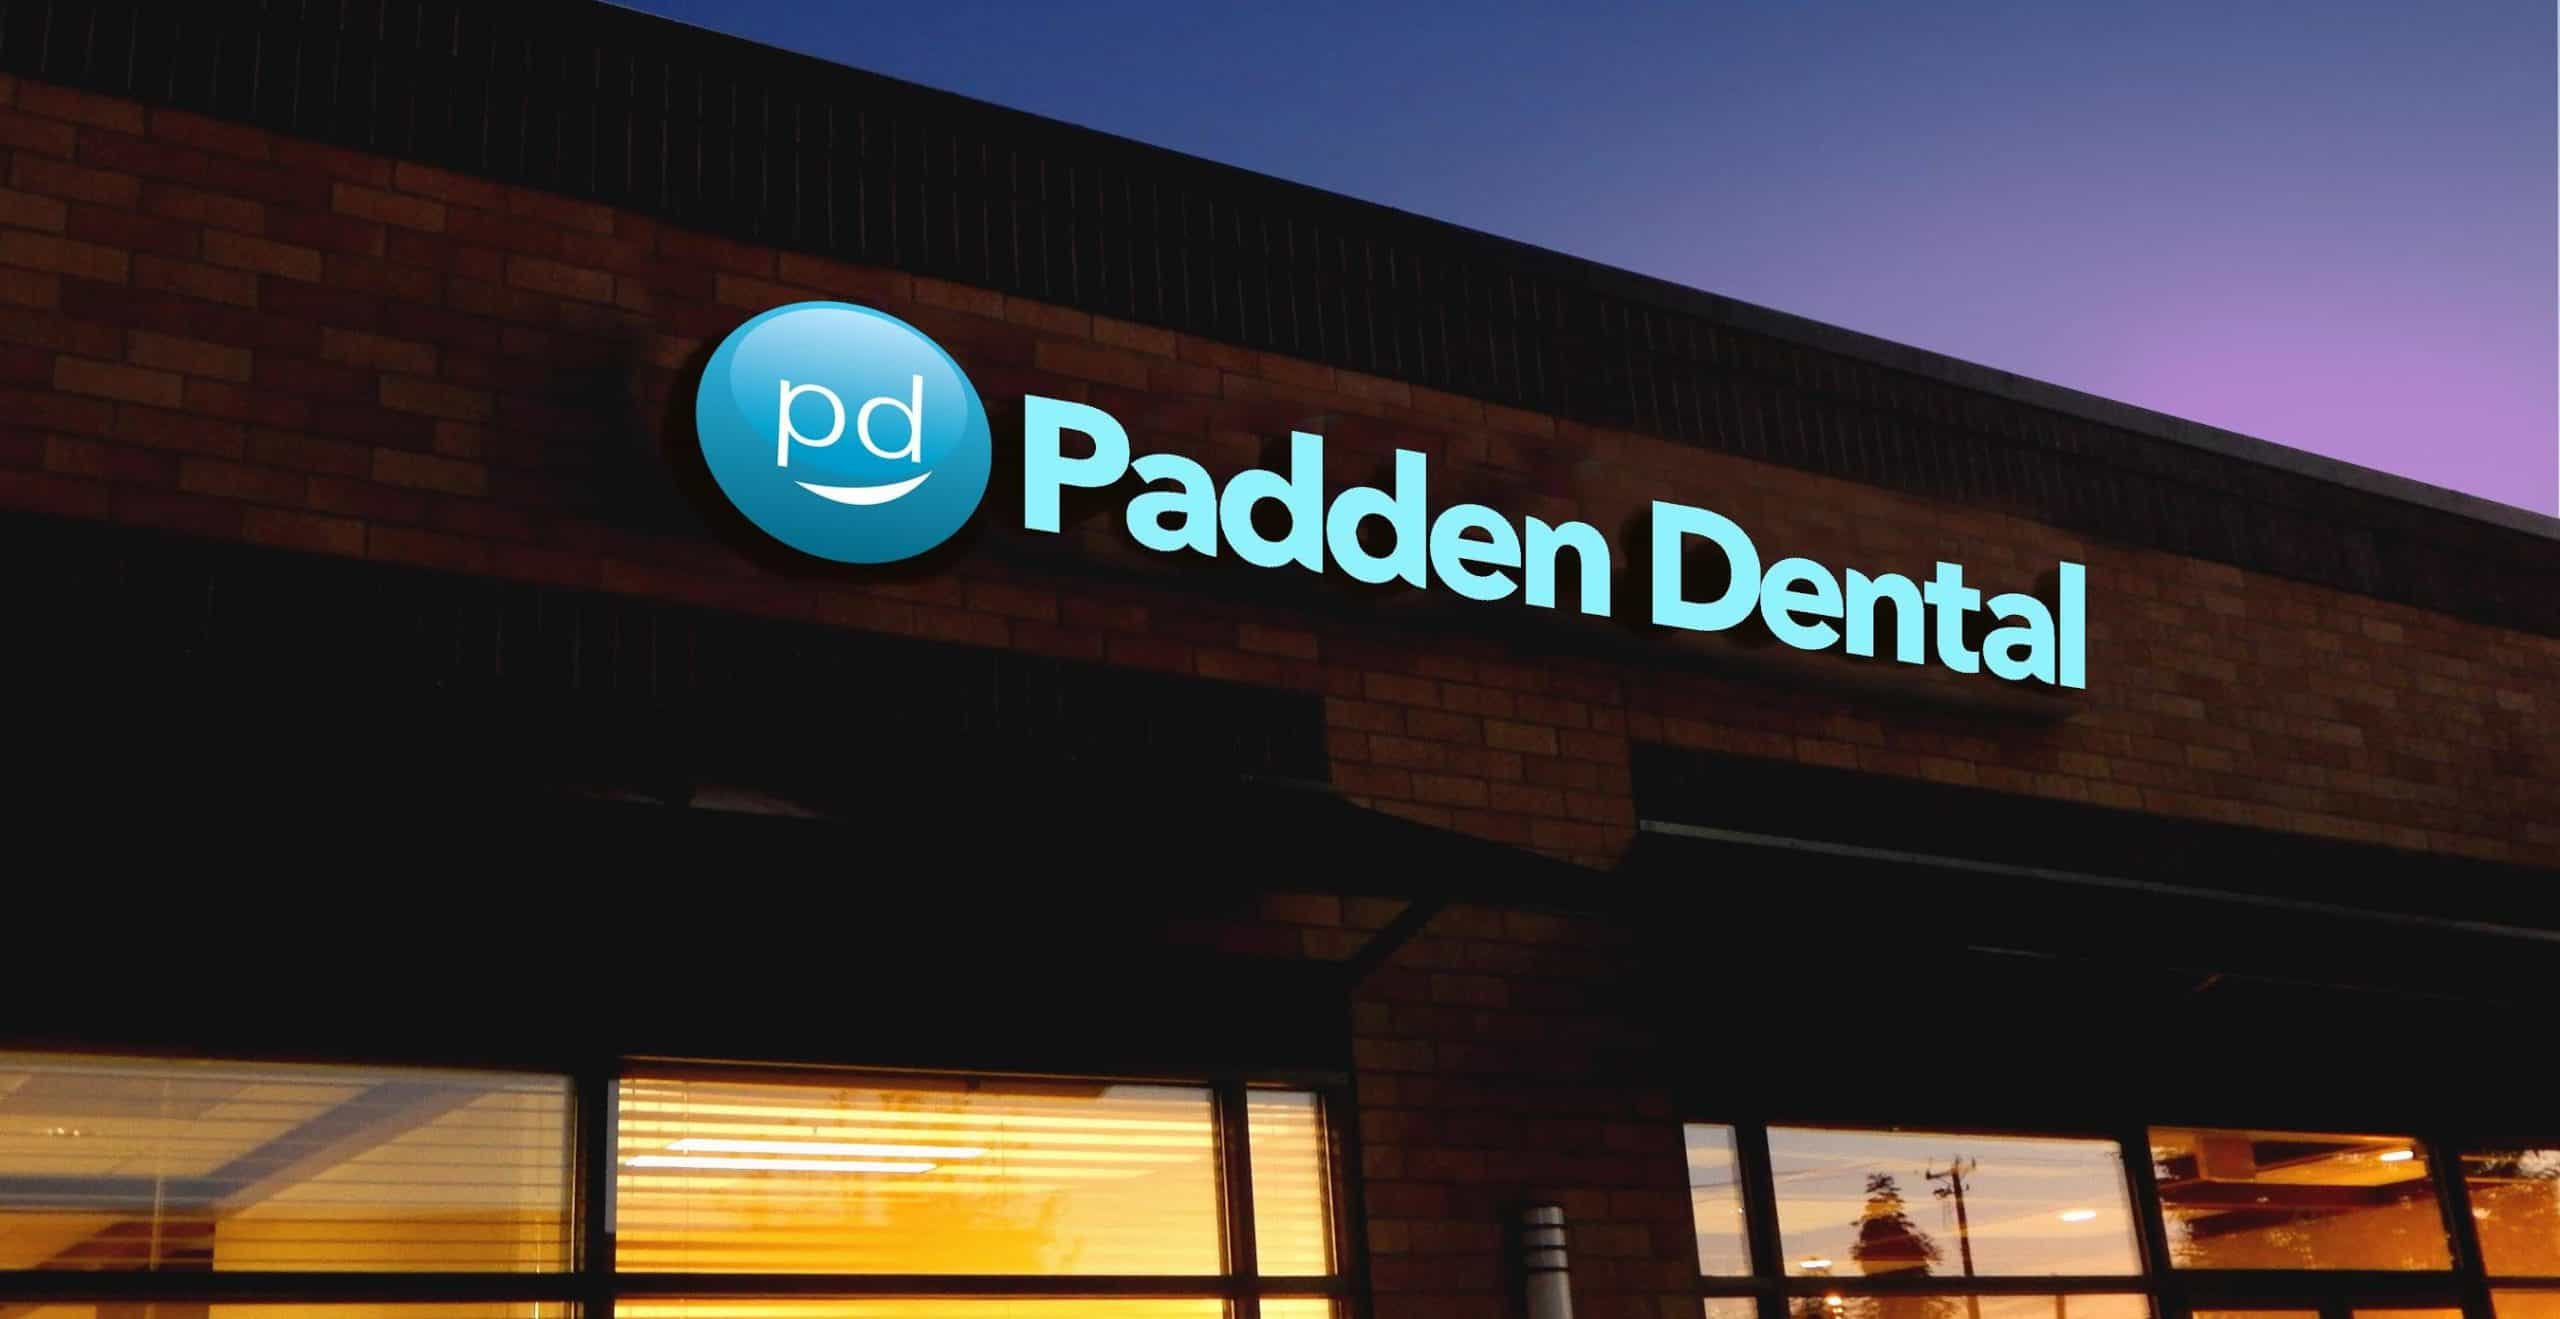 Padden Dental is in the Smiles Business